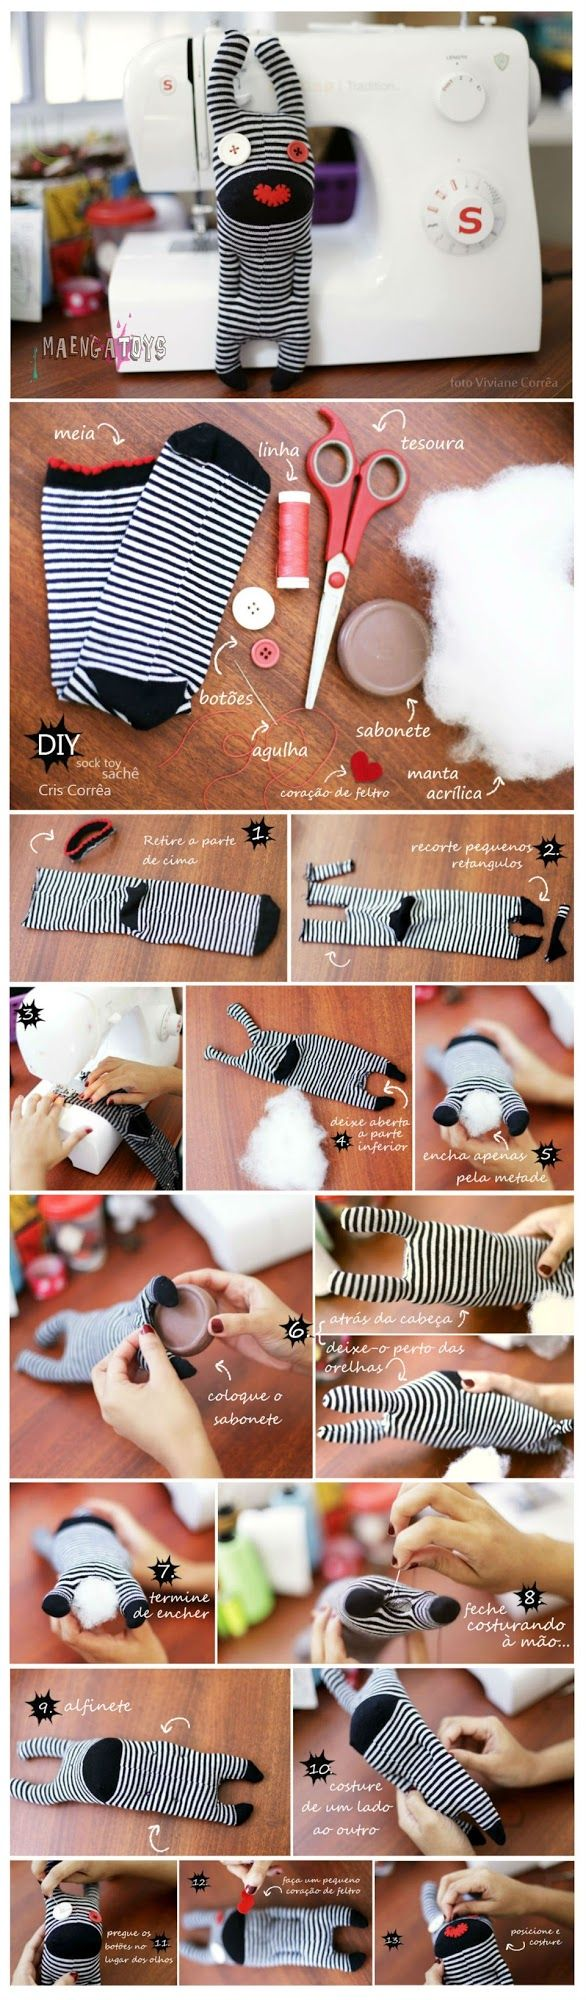 How to make sock monsters.